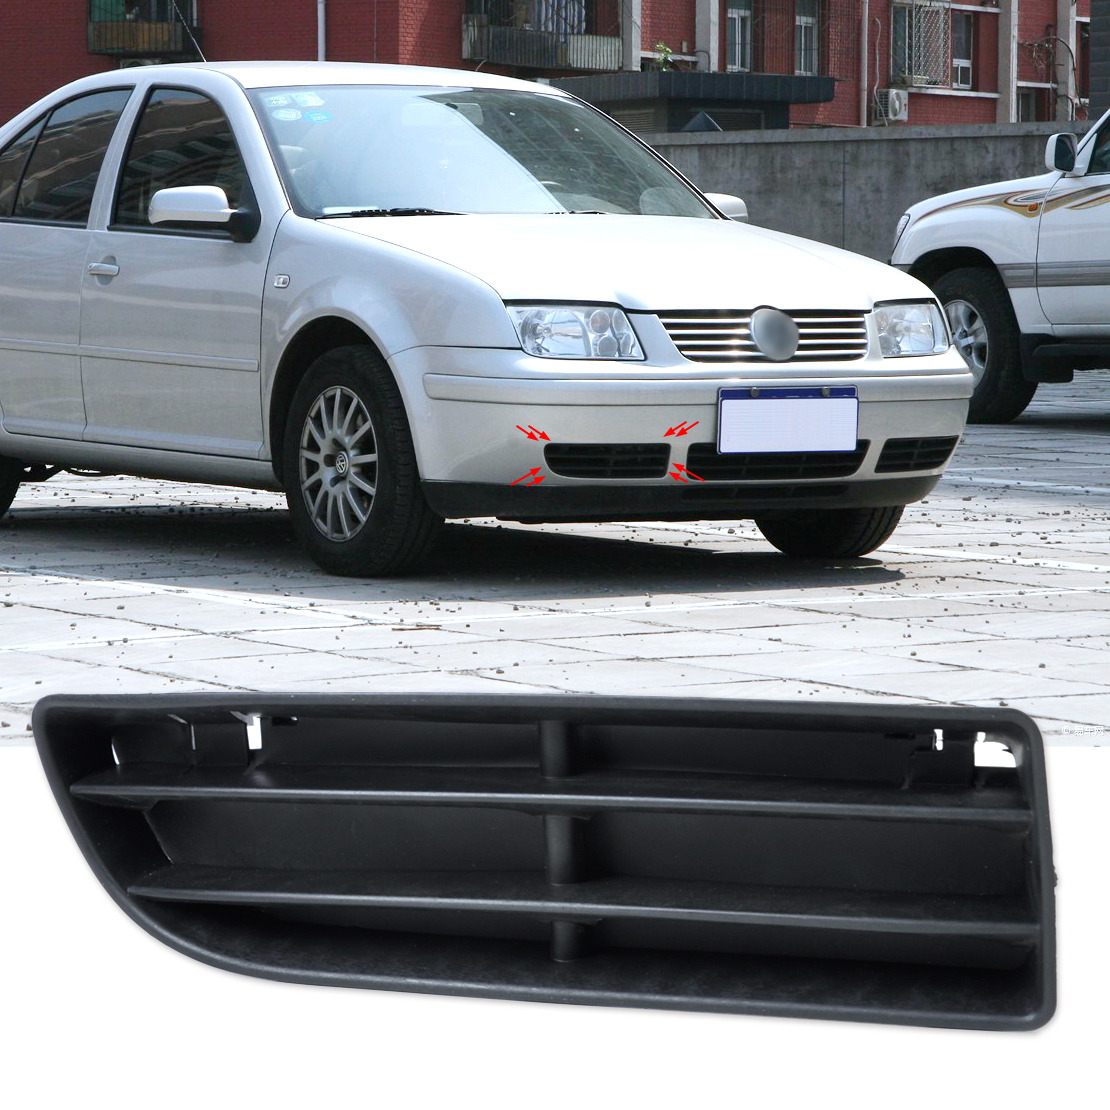 DWCX 1J5853666C Front Right Bumper Lower Grill Vent for VW Volkswagen Jetta Bora MK4 1999 2000 2001 2002 2003 2004 dwcx 1j5853665b 1j5853666c front lower grille bumper vent for volkswagen vw jetta bora mk4 1999 2000 2001 2002 2003 2004